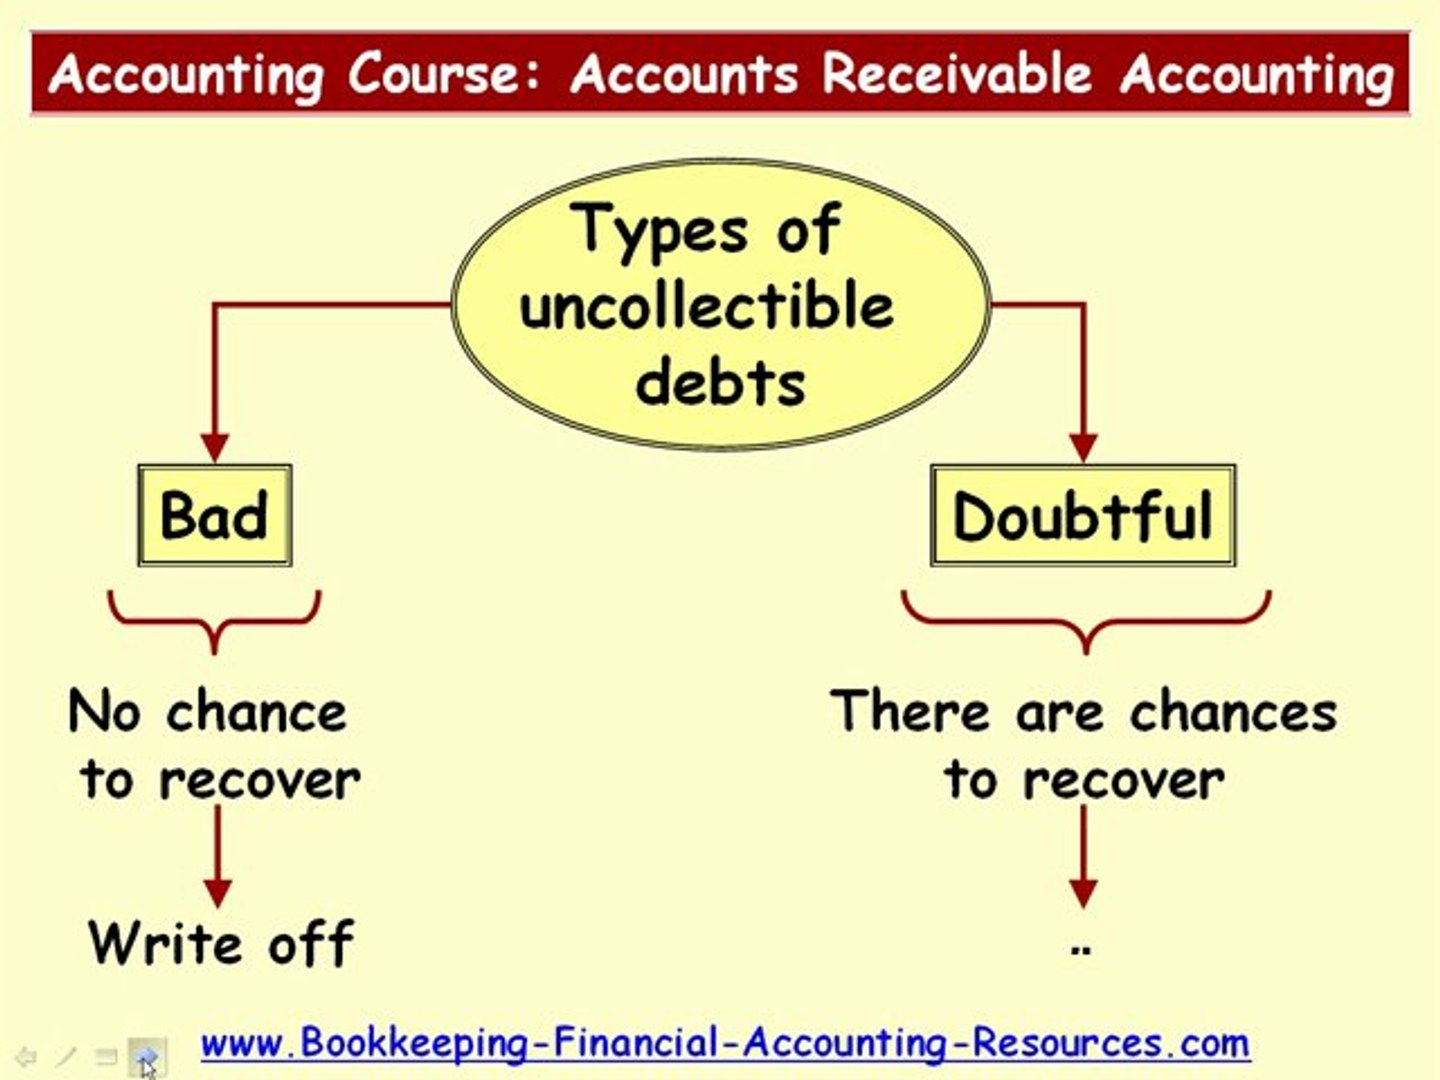 Accounting Course Accounts Receivable Accounting